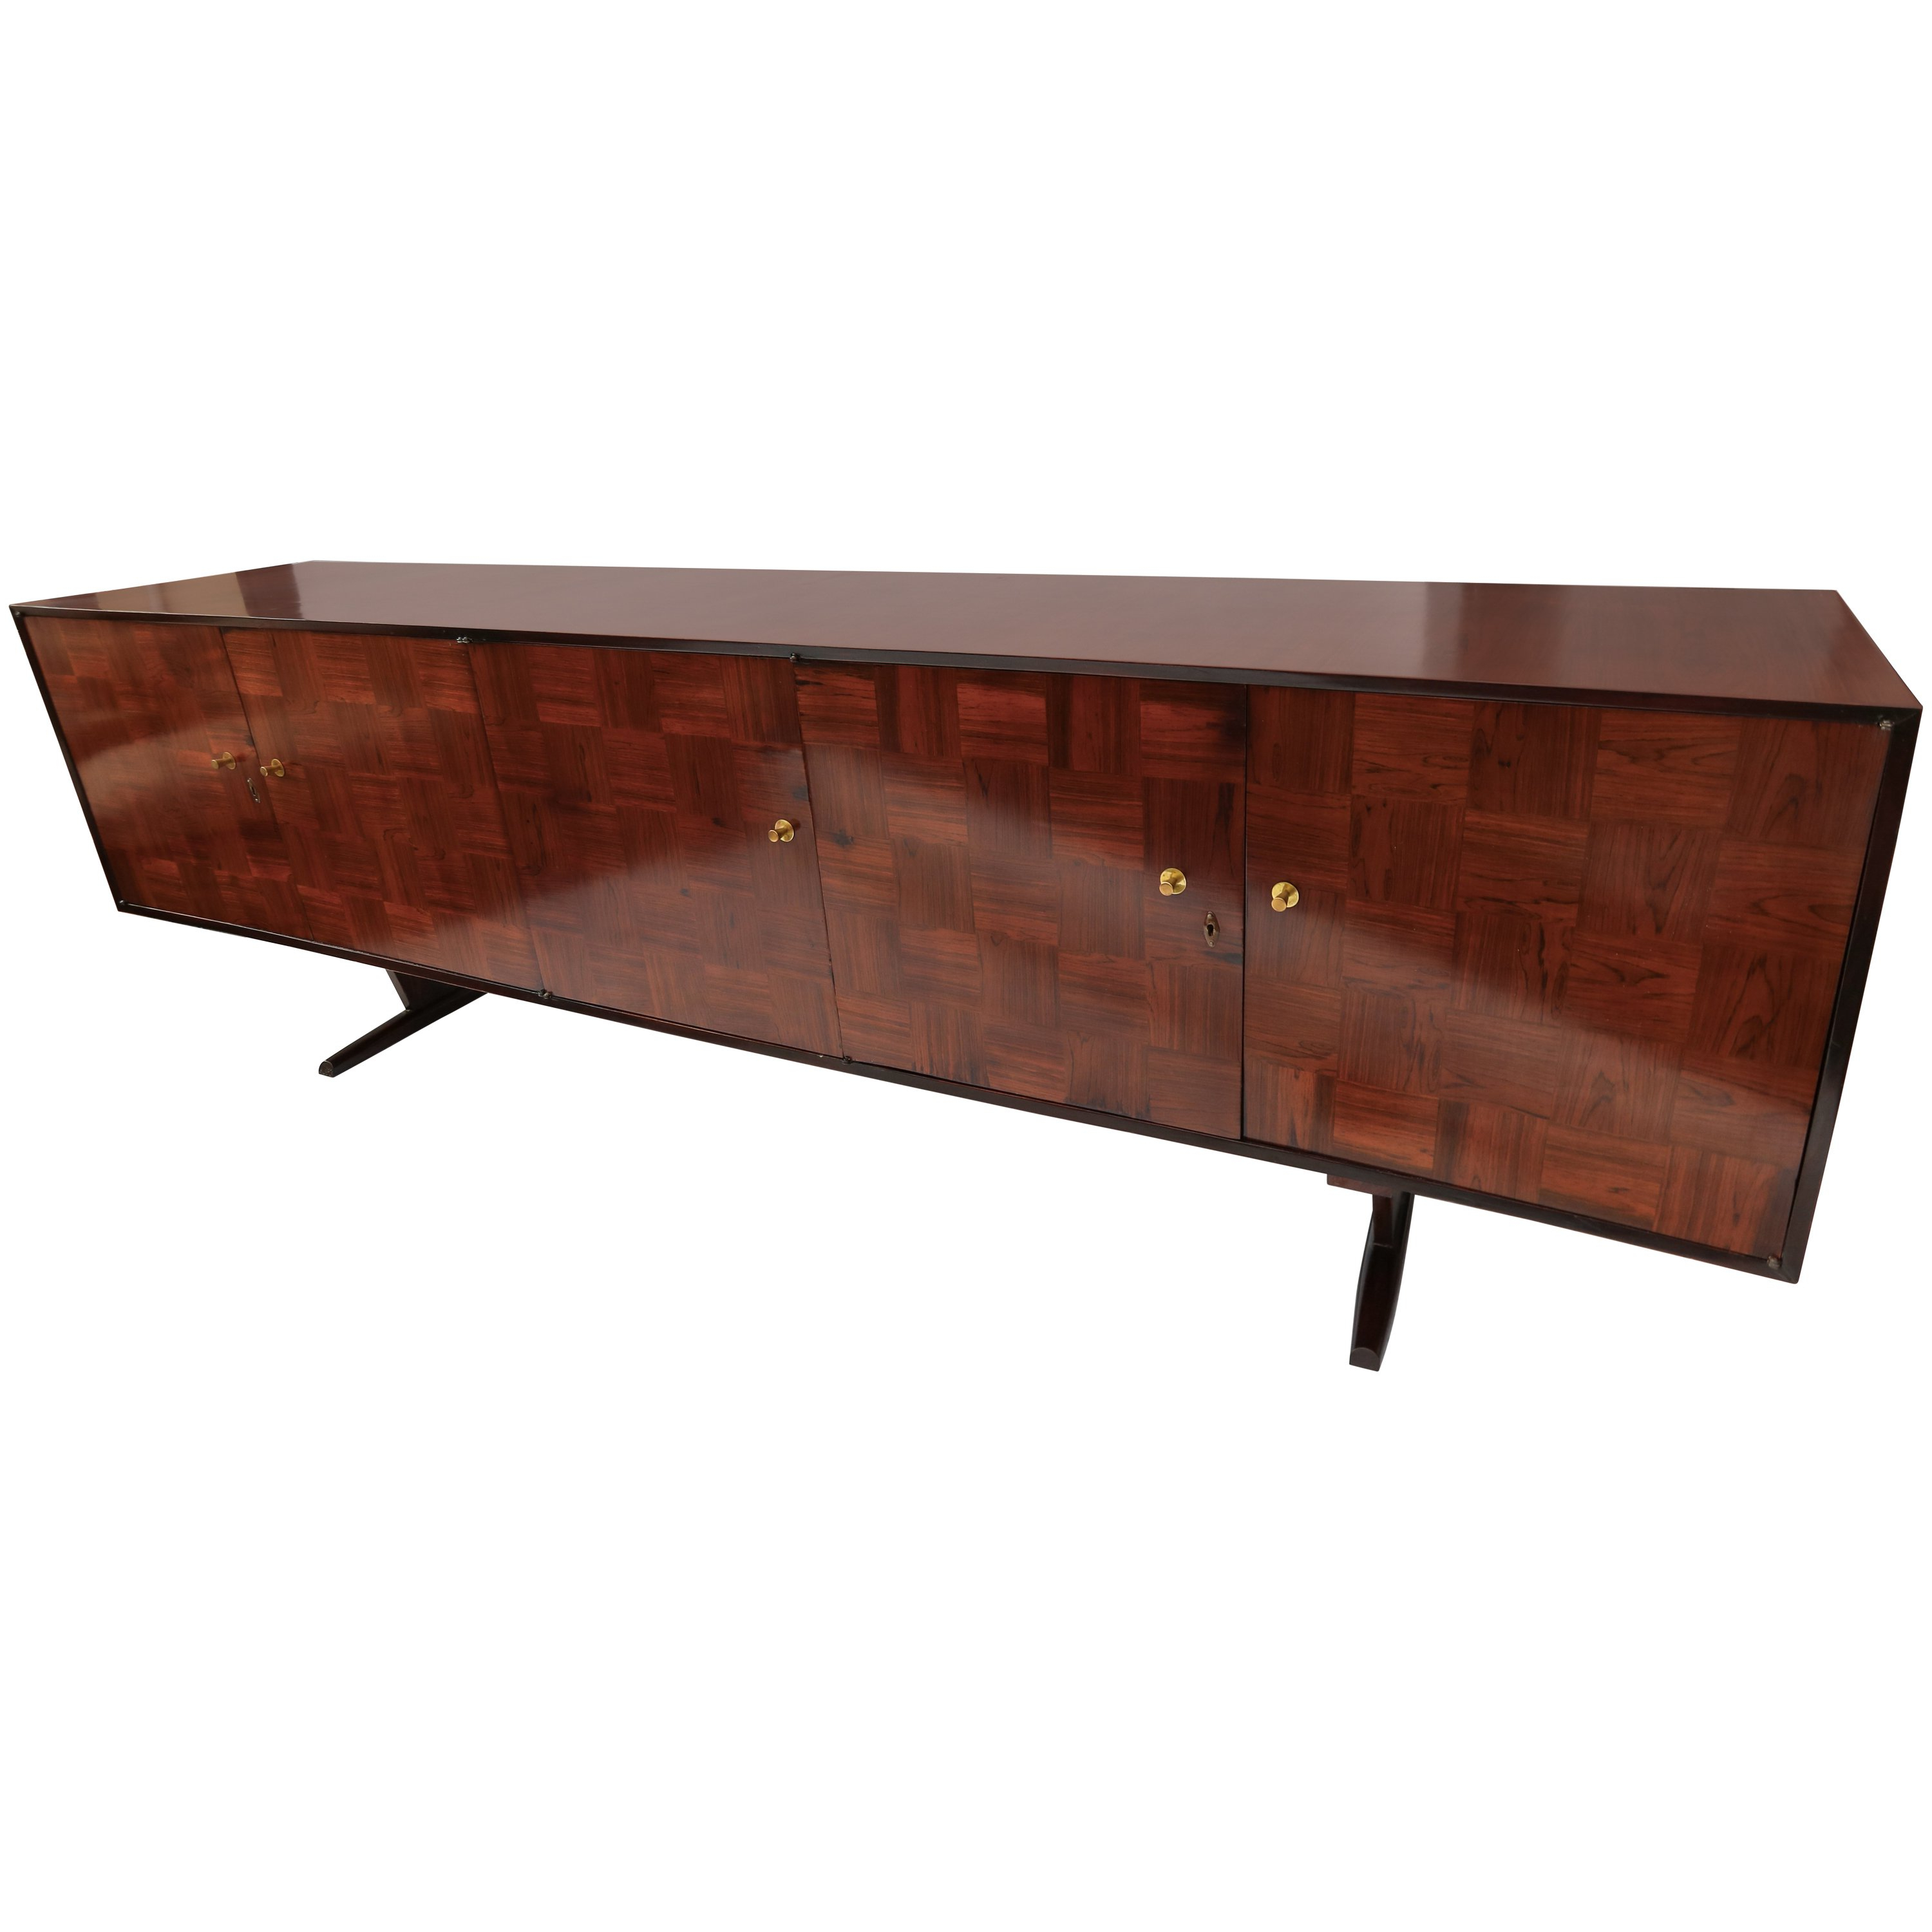 Popular Parquet Sideboards For Scapinelli 1960S Brazilian Jacaranda Parquet Sideboard For Sale At (View 13 of 20)